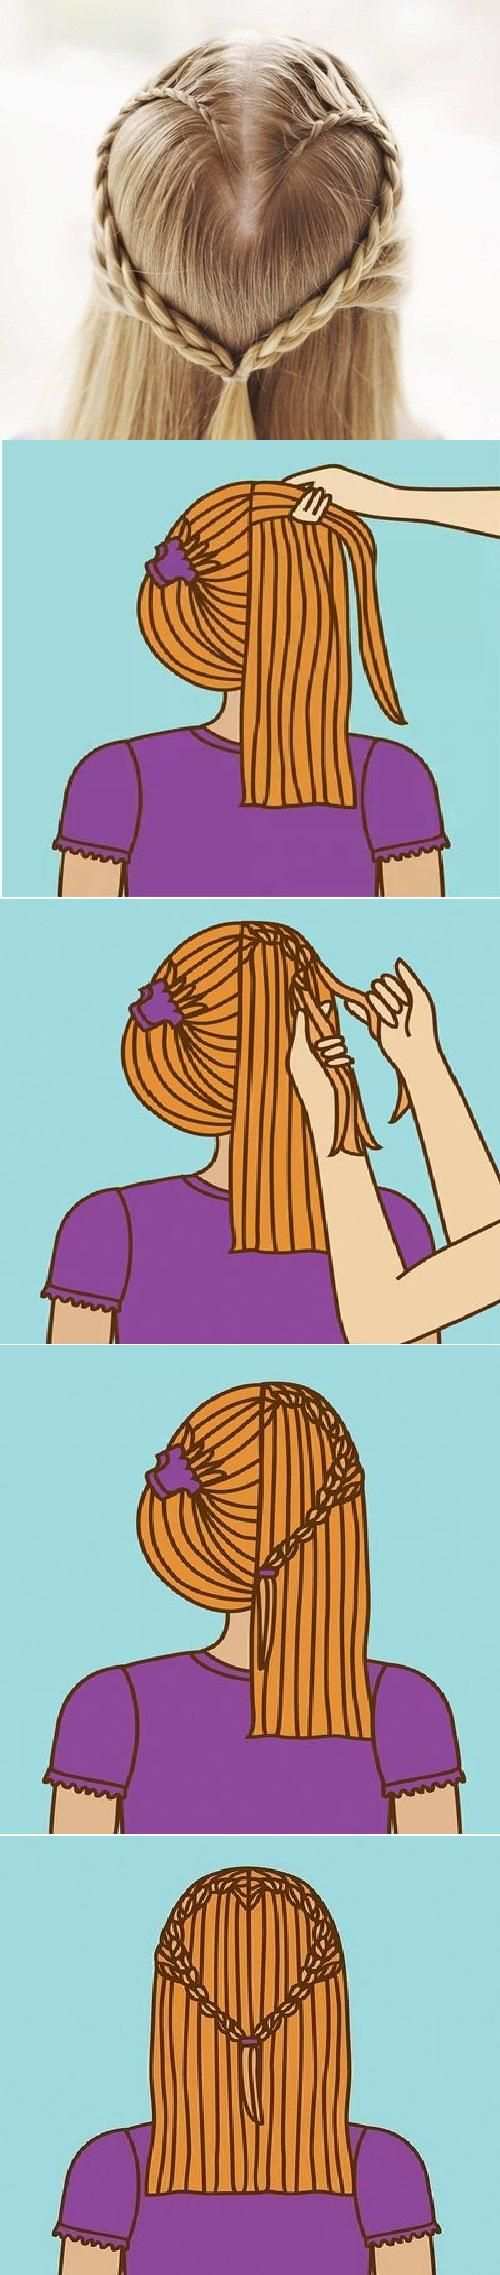 DIY Heart Design Hairstyle--great for camping or hiking!